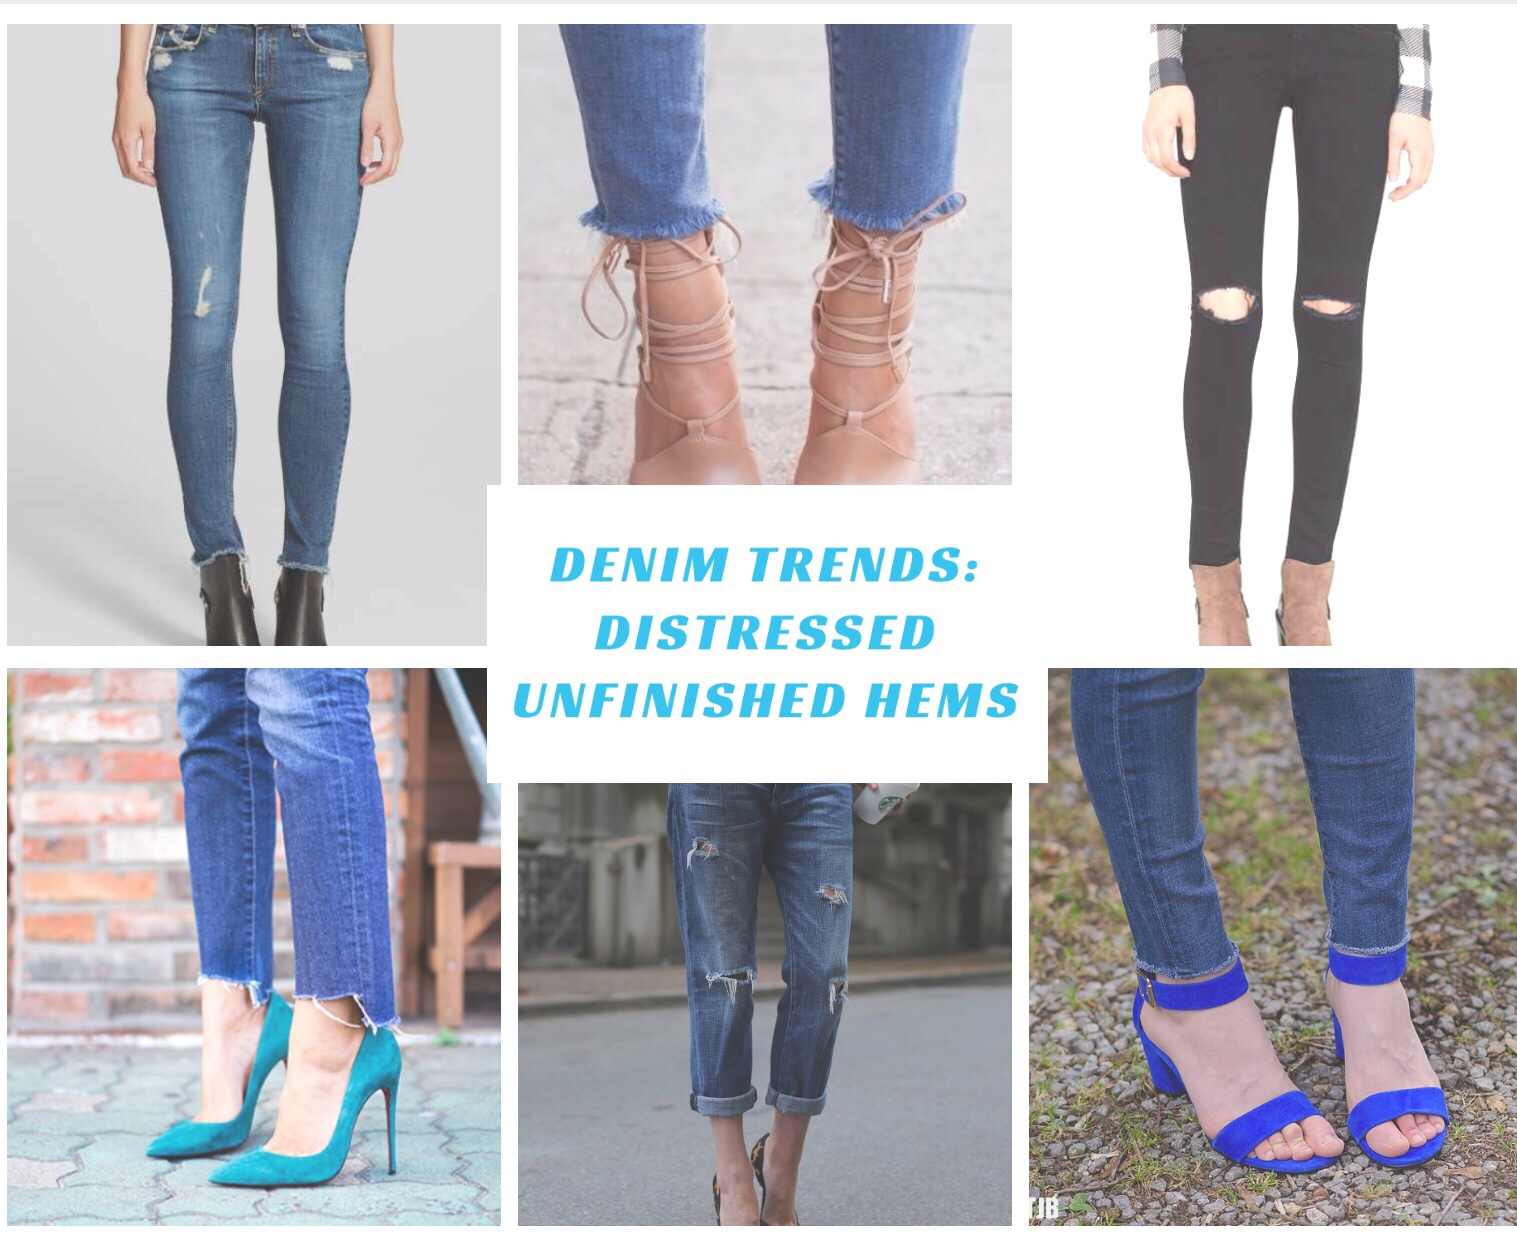 Denim Trends: Distressing and Unfinished Hems